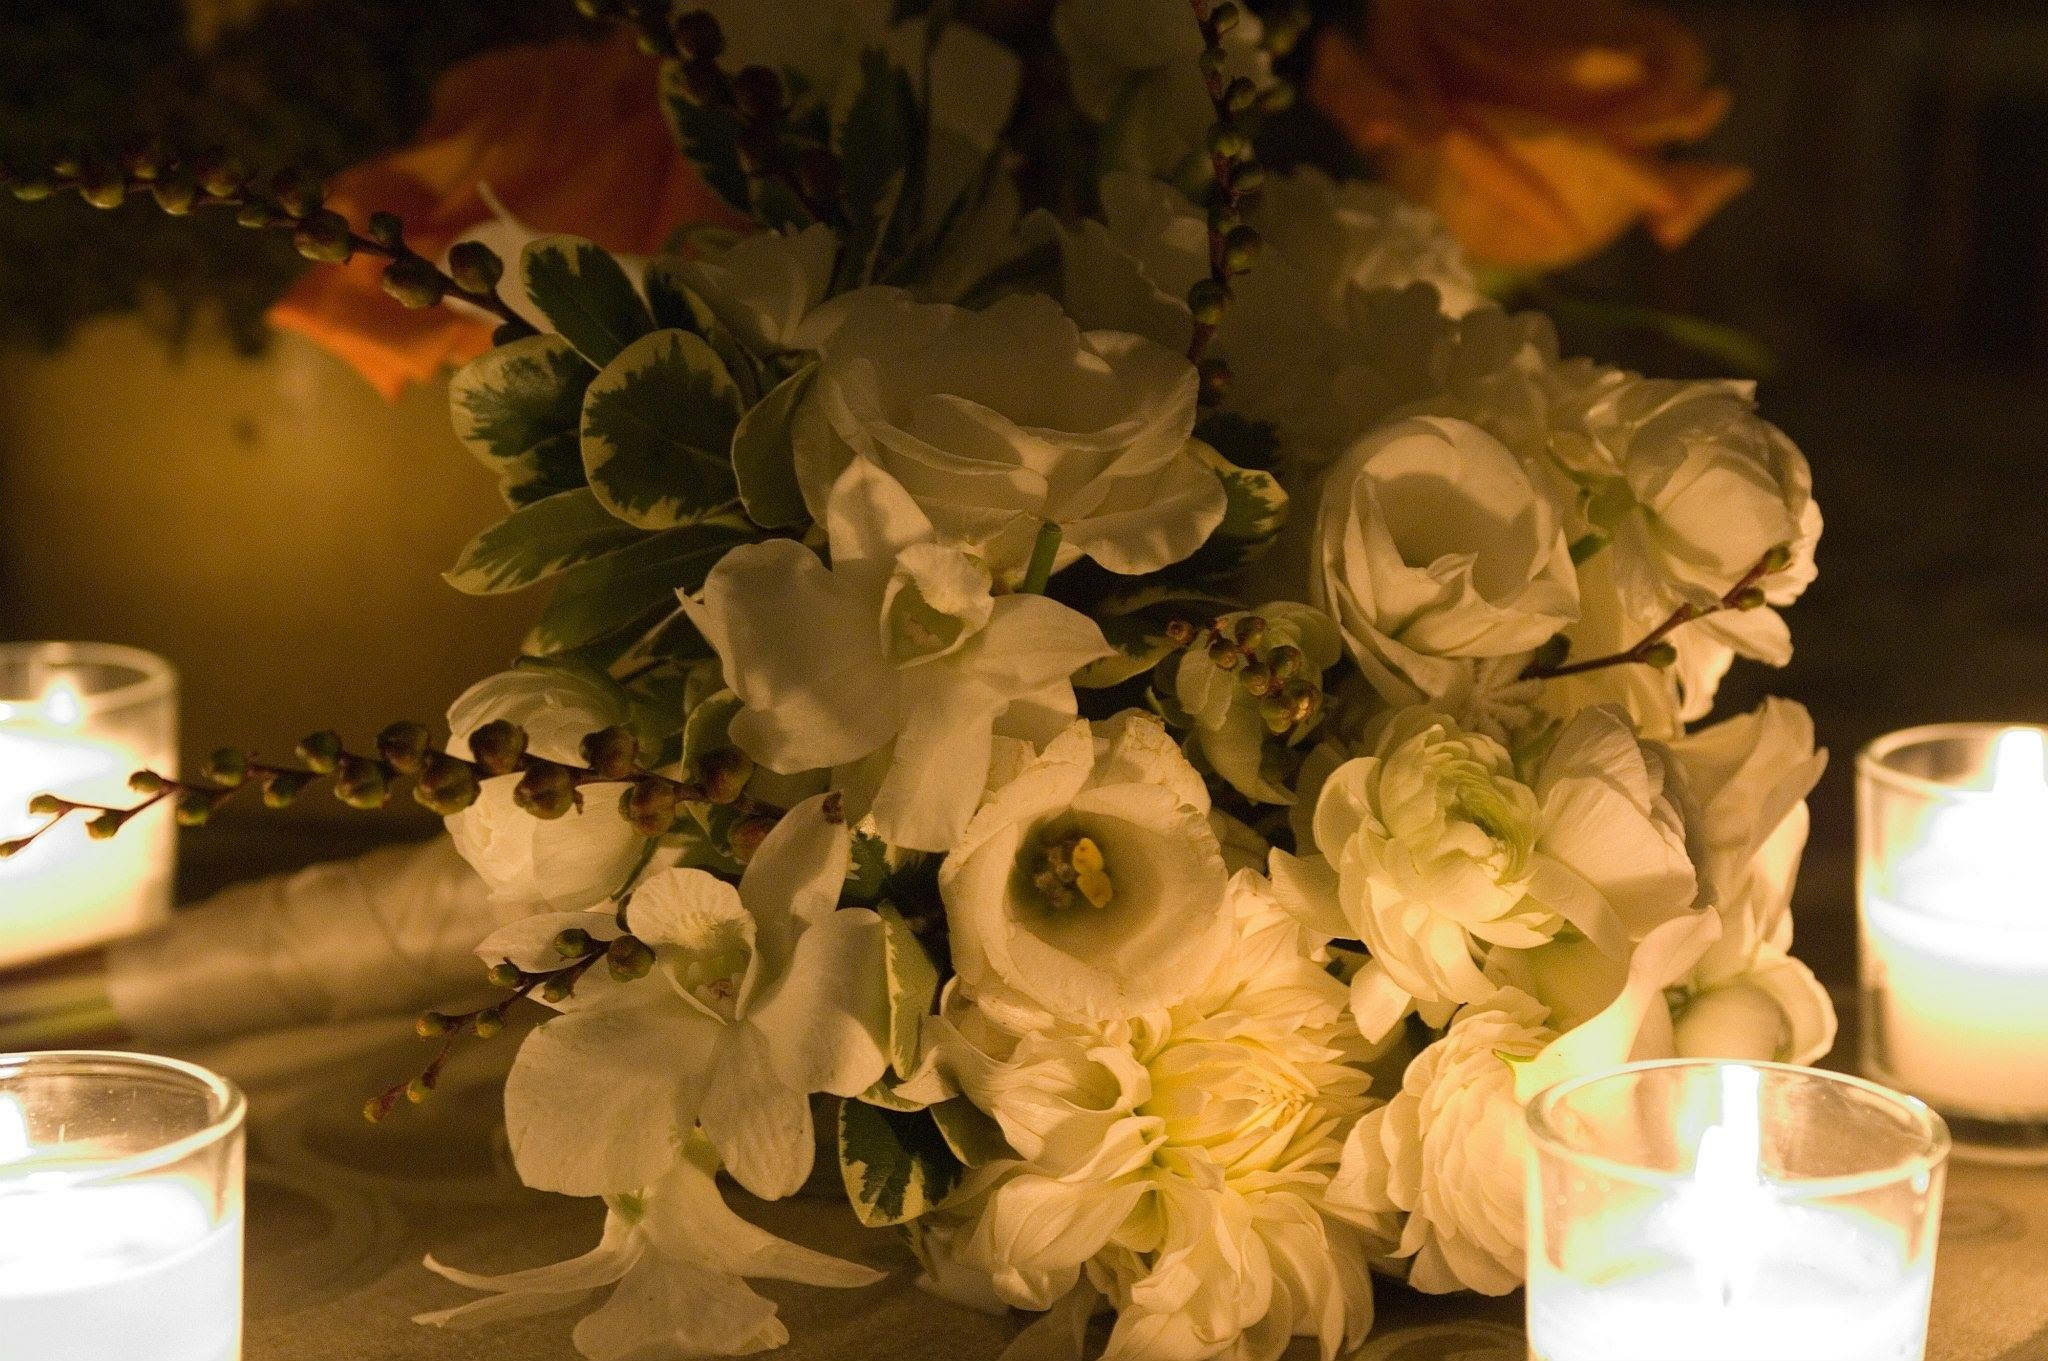 pa-pittsburgh-wedding-flowers-131.jpg